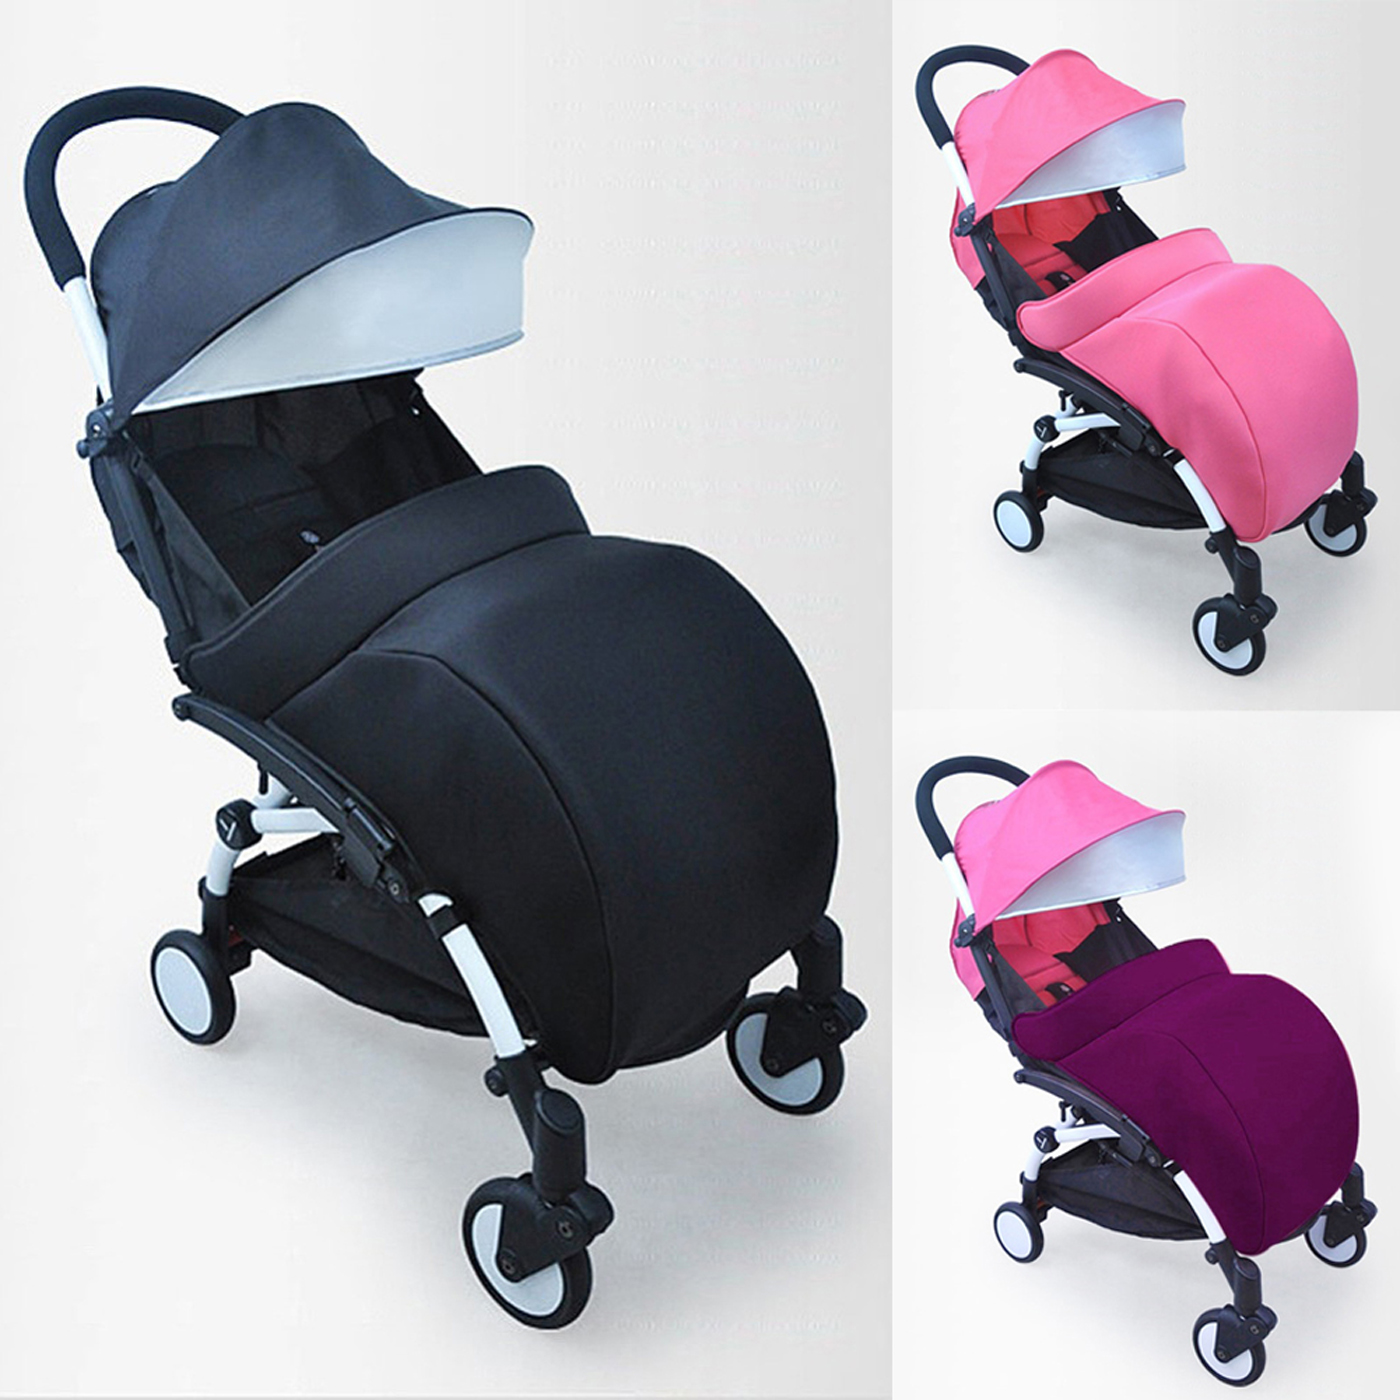 Universal Warm Winter Quilted Stroller Foot Muff Windshield Cover For Babies Soft Warm Safe Foot Muff Baby Stroller Foot Muff